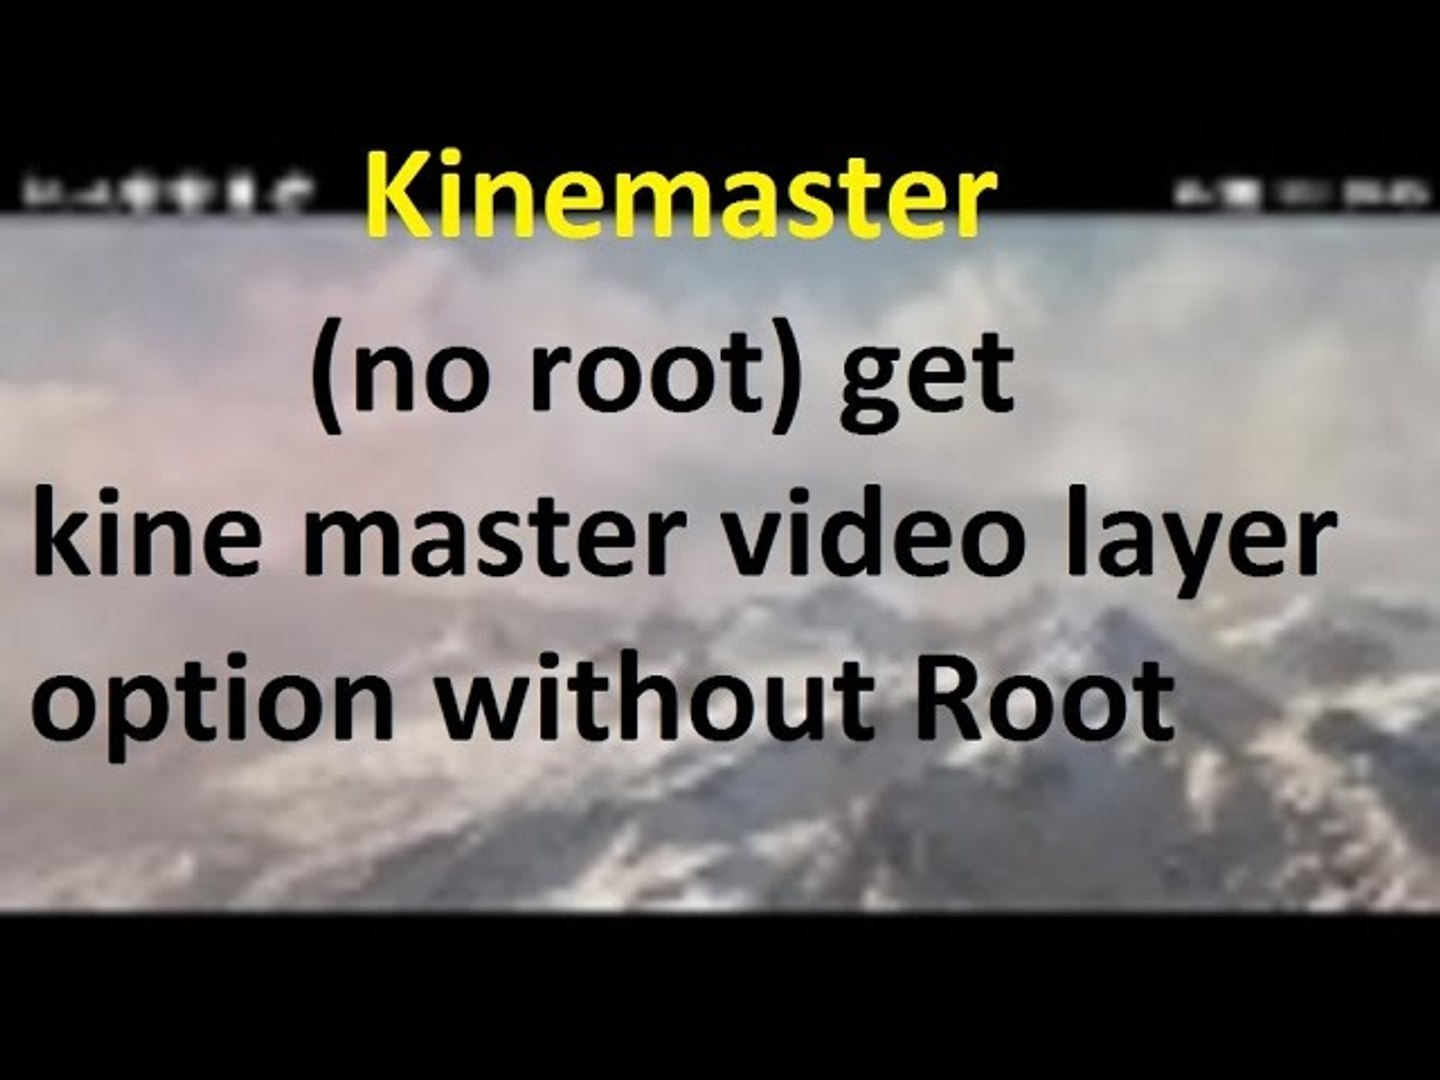 How to get kinemaster video layer option%2C chroma key without Root %7C No  Root %7C